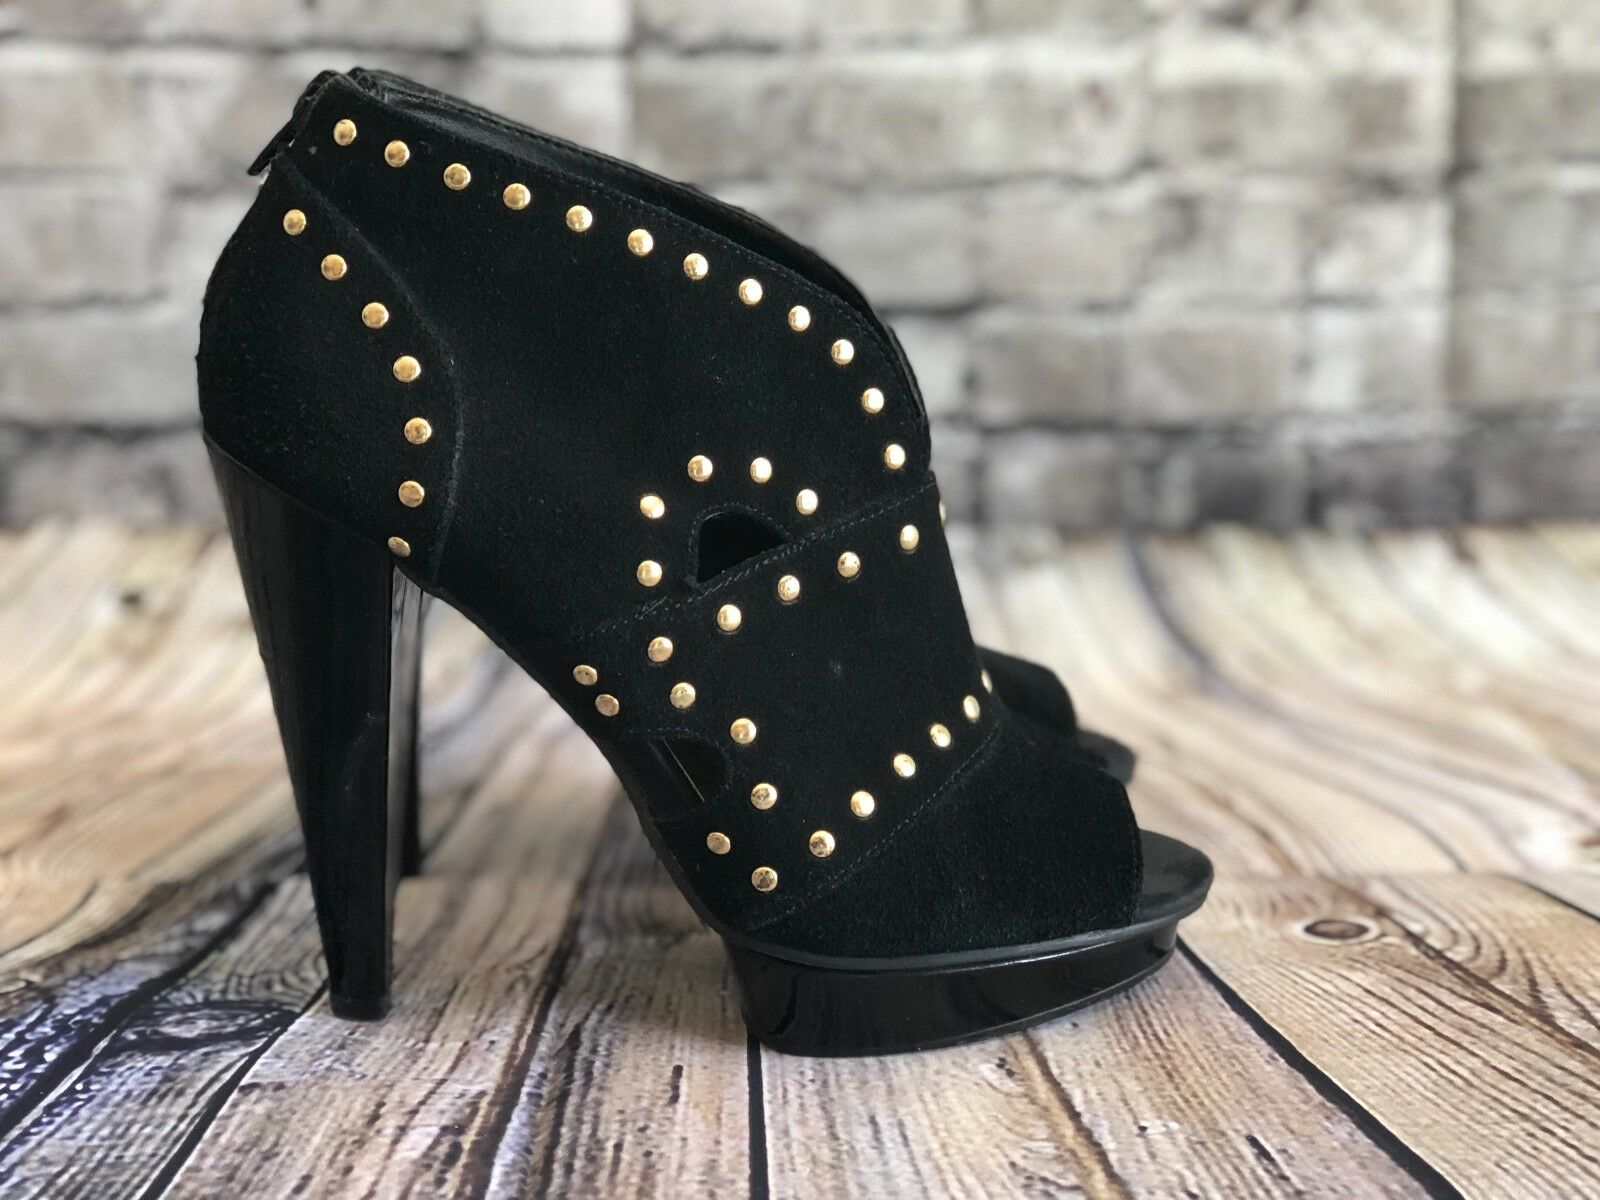 Steve Madden Womans 6.5 Ankle Boots Booties Black Suede Studded Platform PeepToe